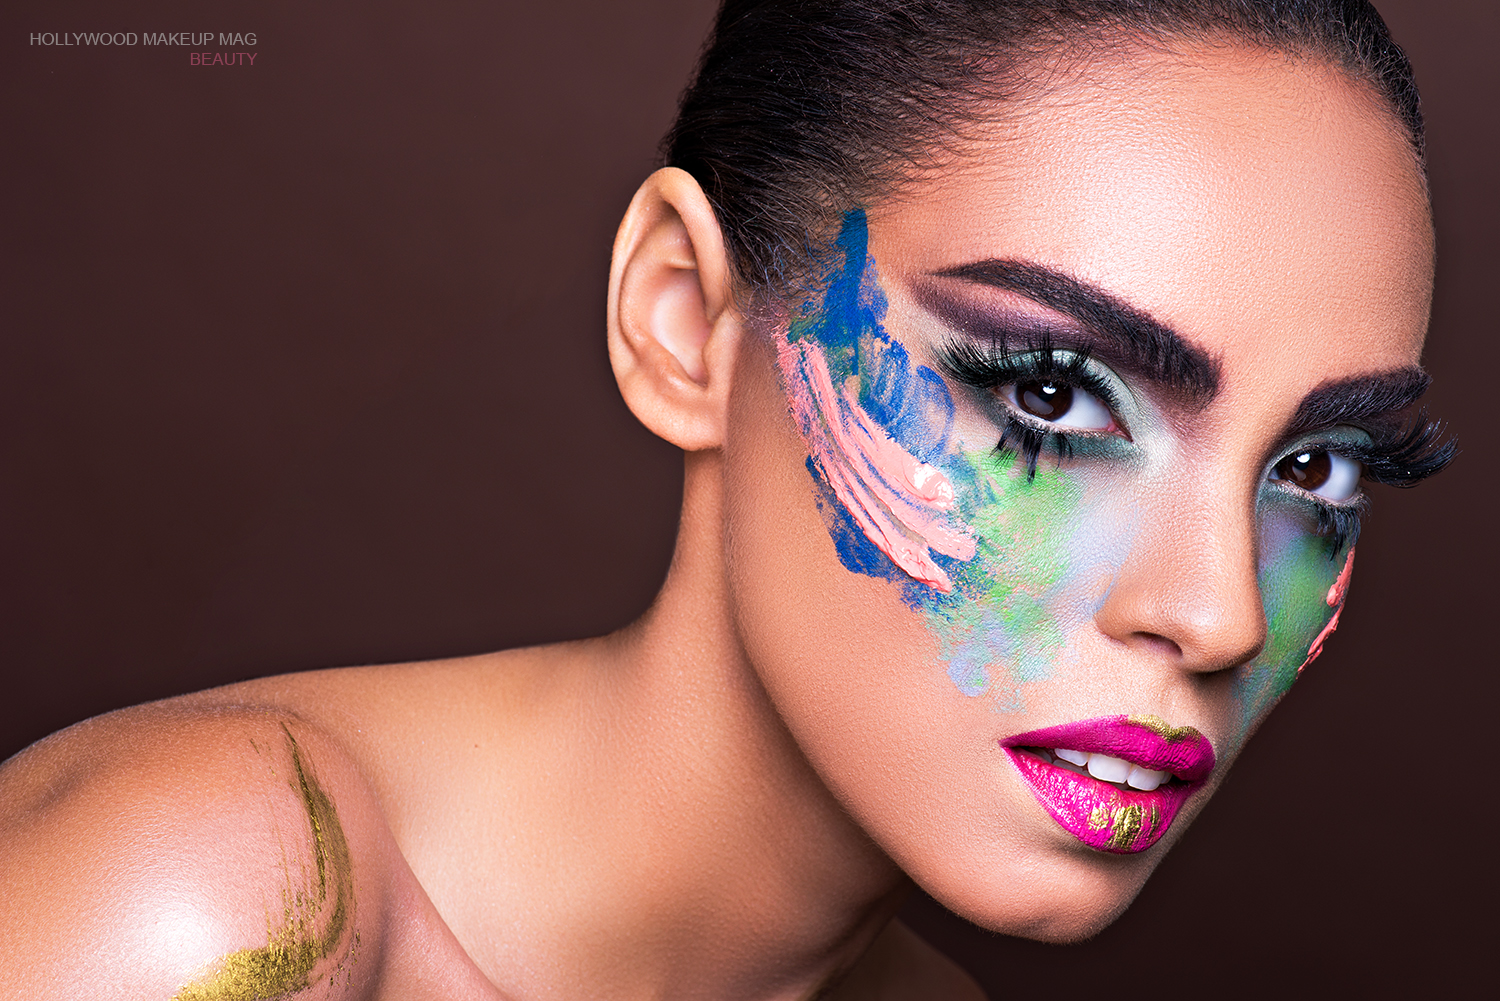 High Fashion makeup editorial colors Makeup For Ever Agne Skaringa Tomas.jpg